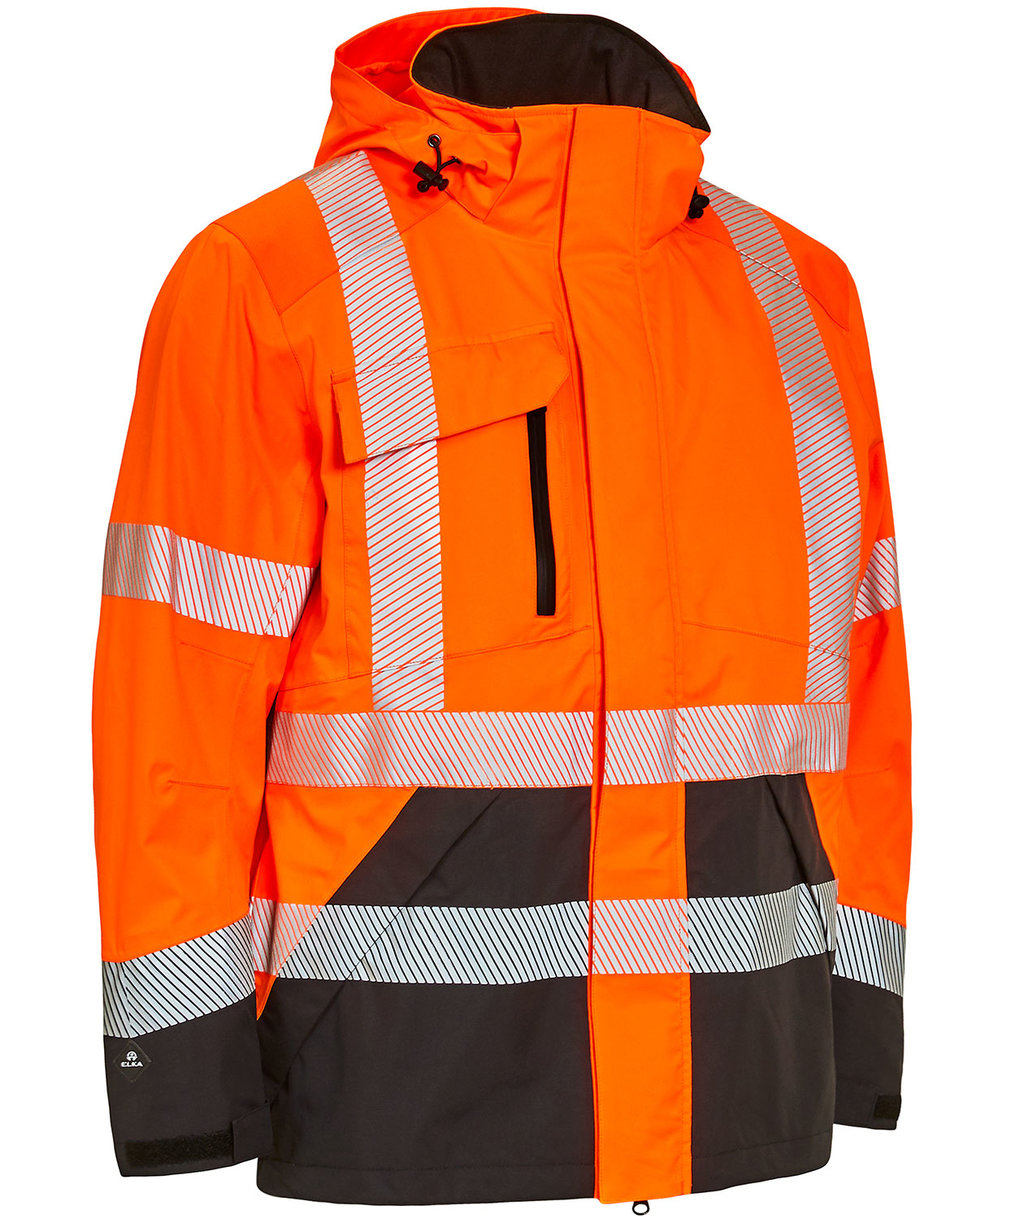 Elka Visible Xtreme stretch jakke, Hi-Vis Orange/Sort